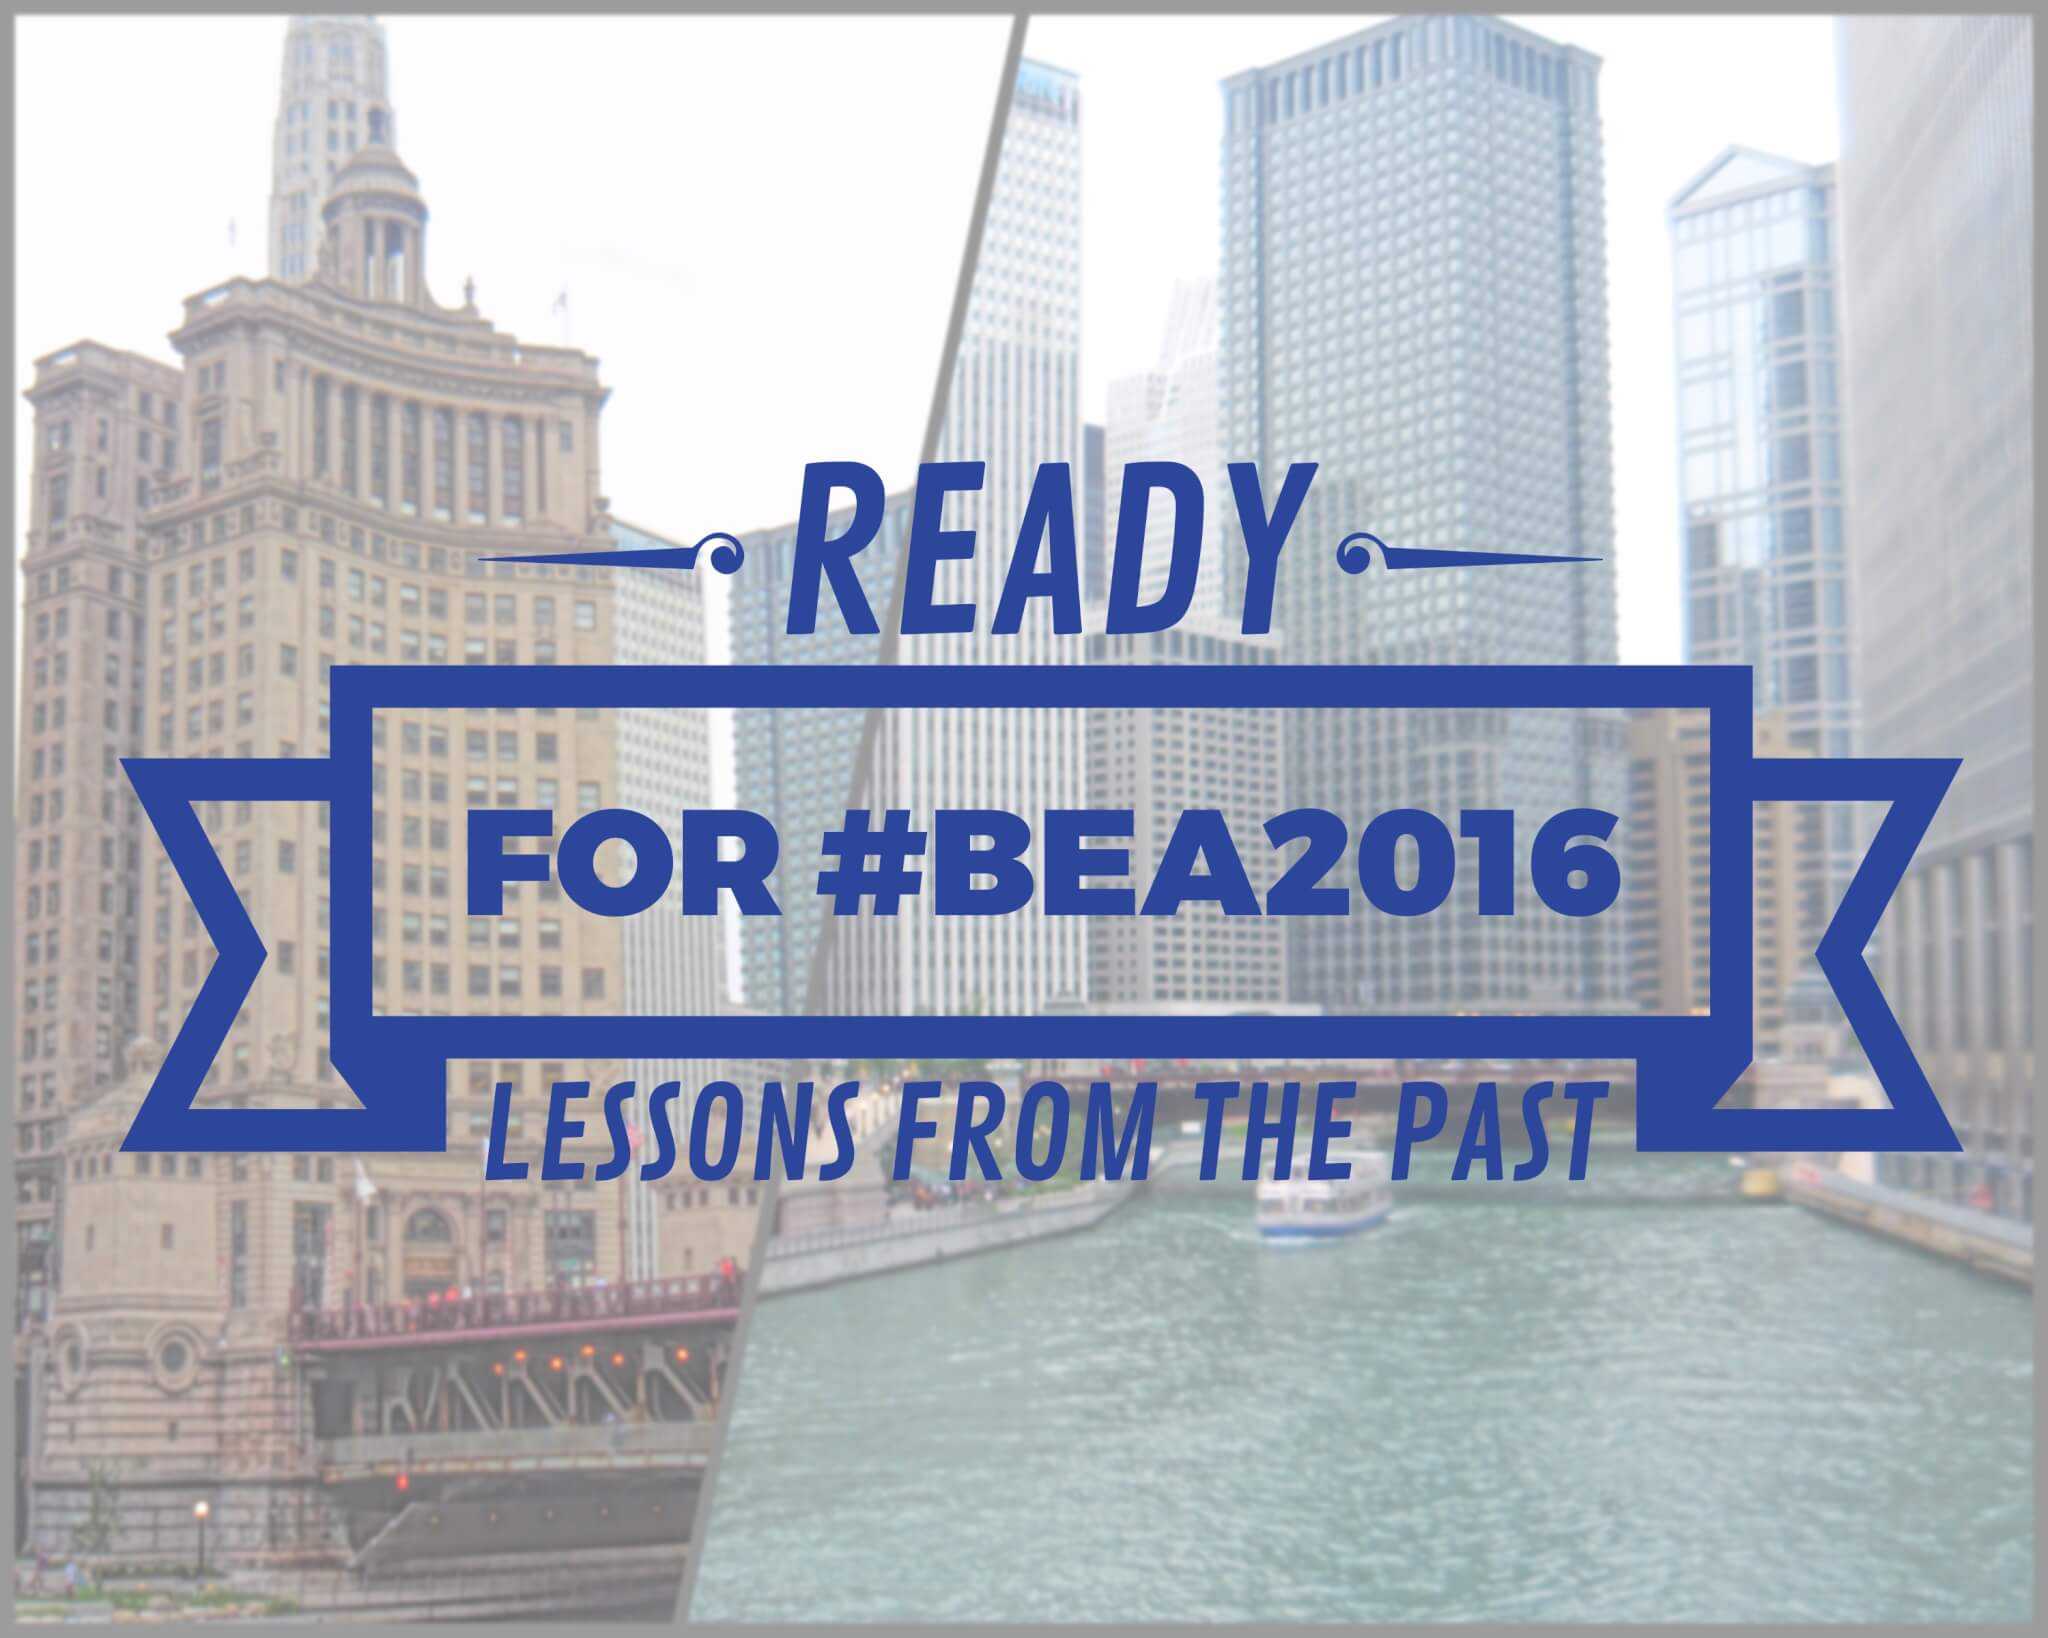 4 lessons from a 4th timer #bea2016